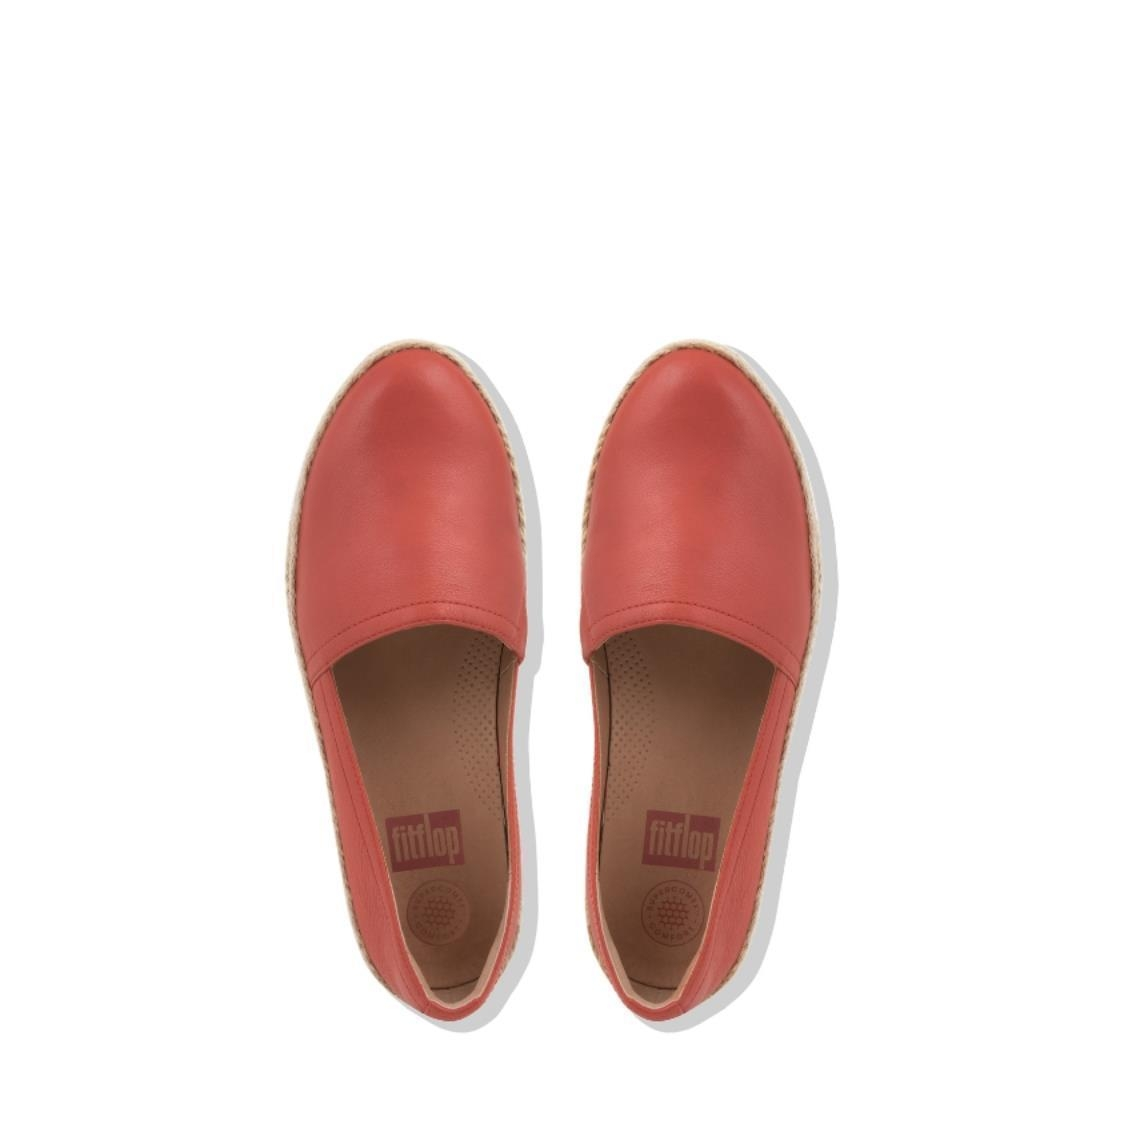 Casa Leather Loafers Sunset Red